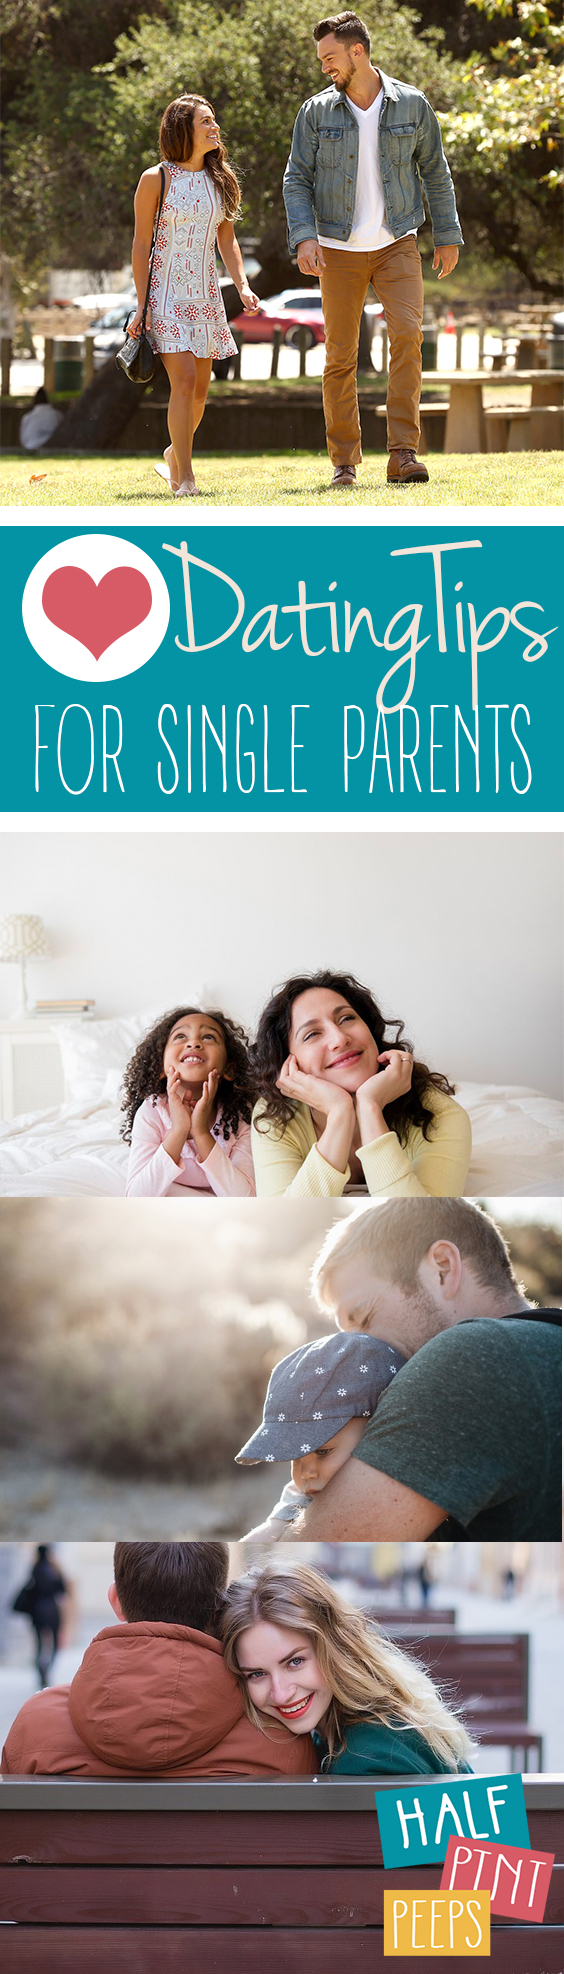 Dating single parents advice